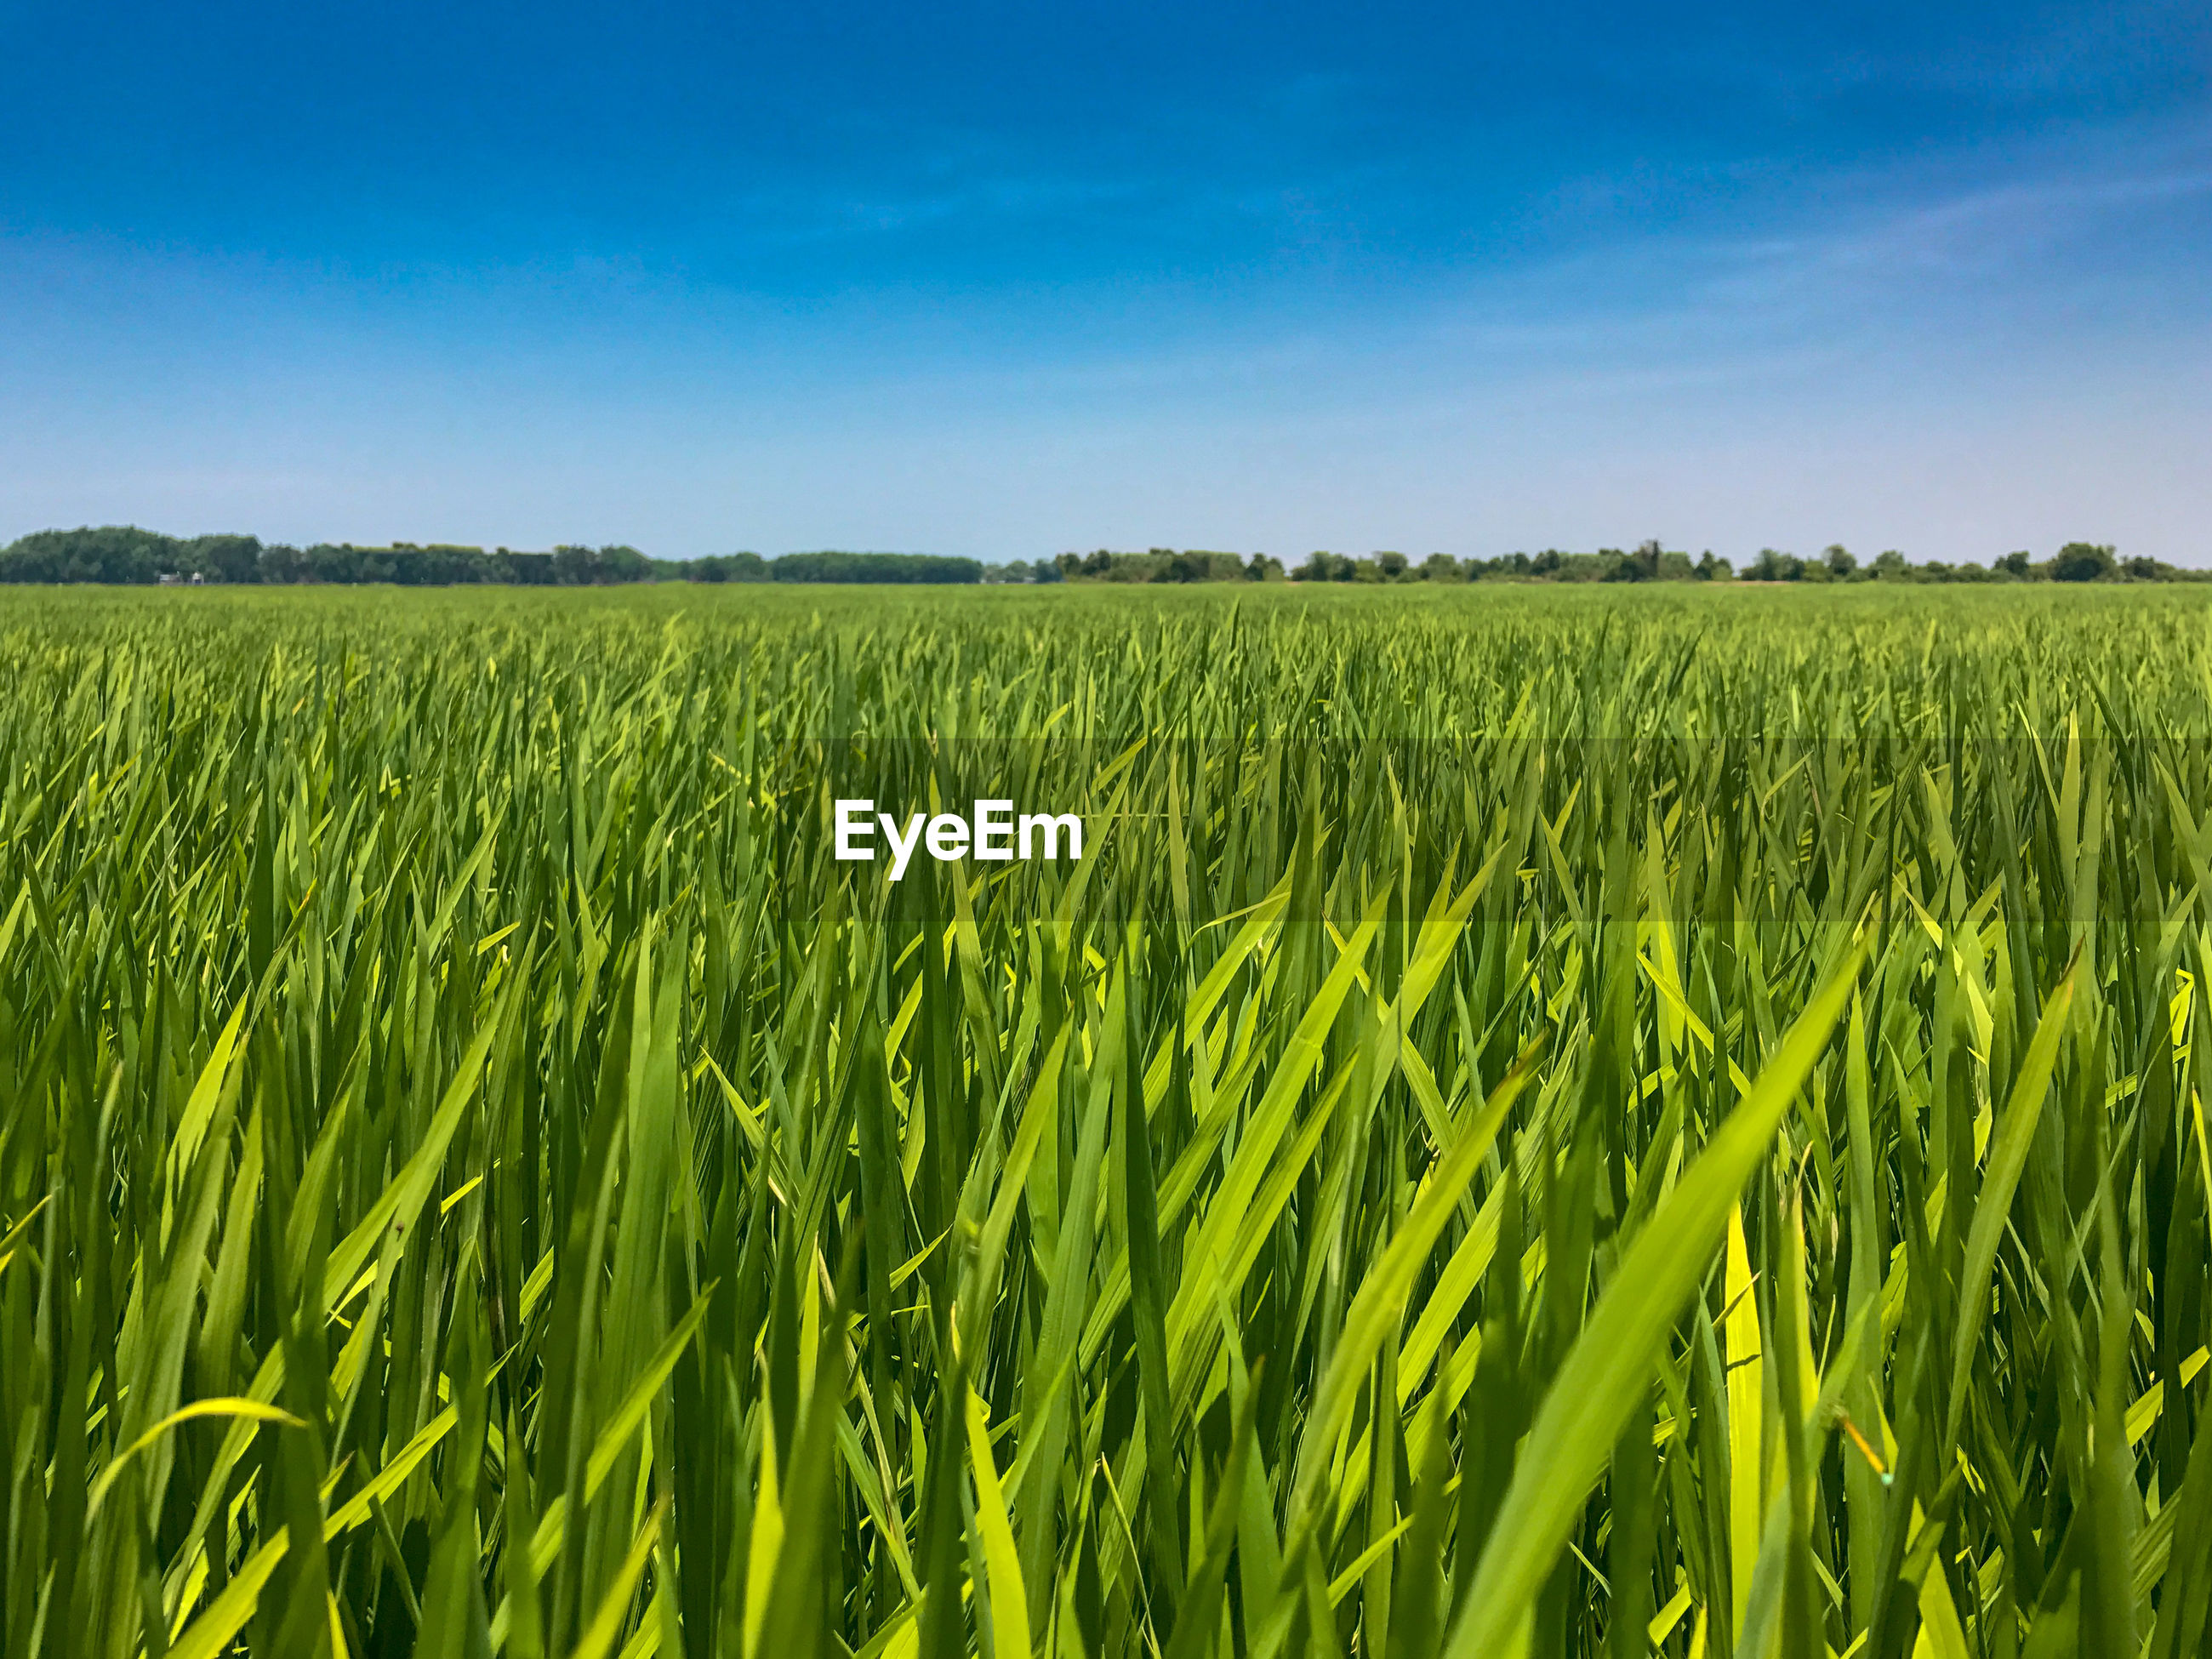 SCENIC VIEW OF CROP FIELD AGAINST BLUE SKY